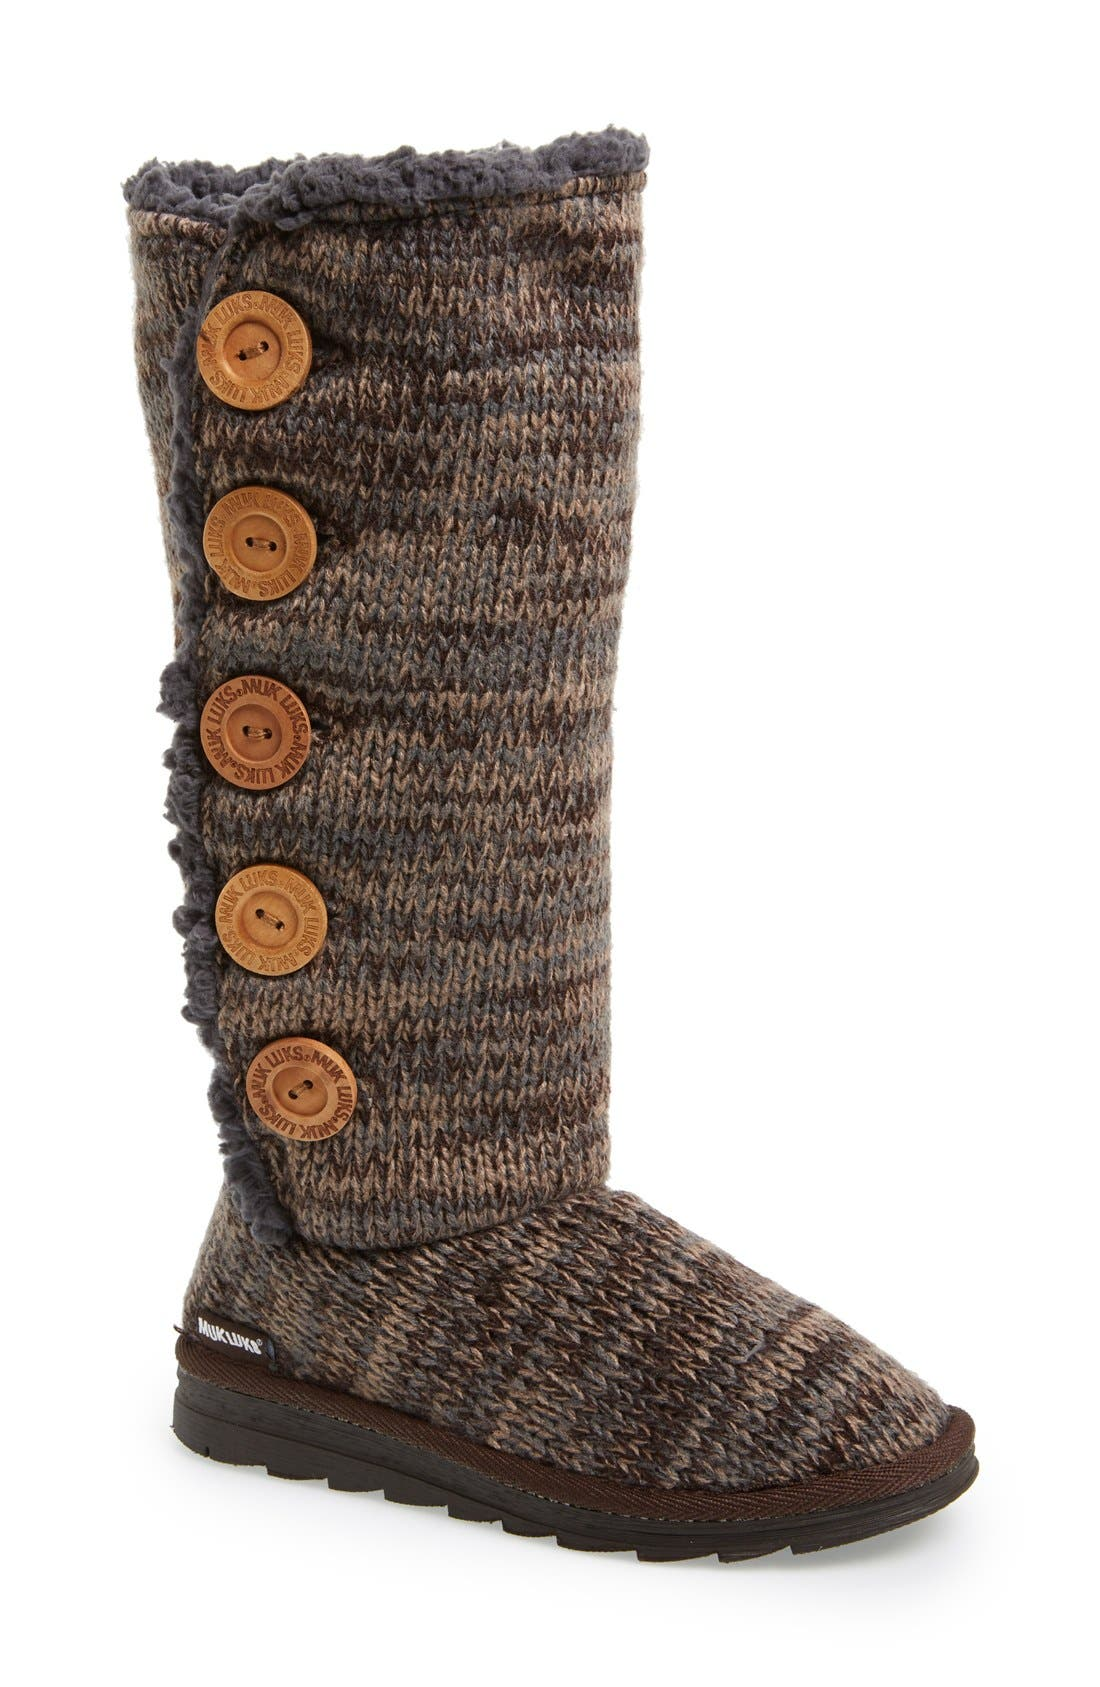 Alternate Image 1 Selected - MUK LUKS 'Malena' Button Up Crochet Boot (Women)